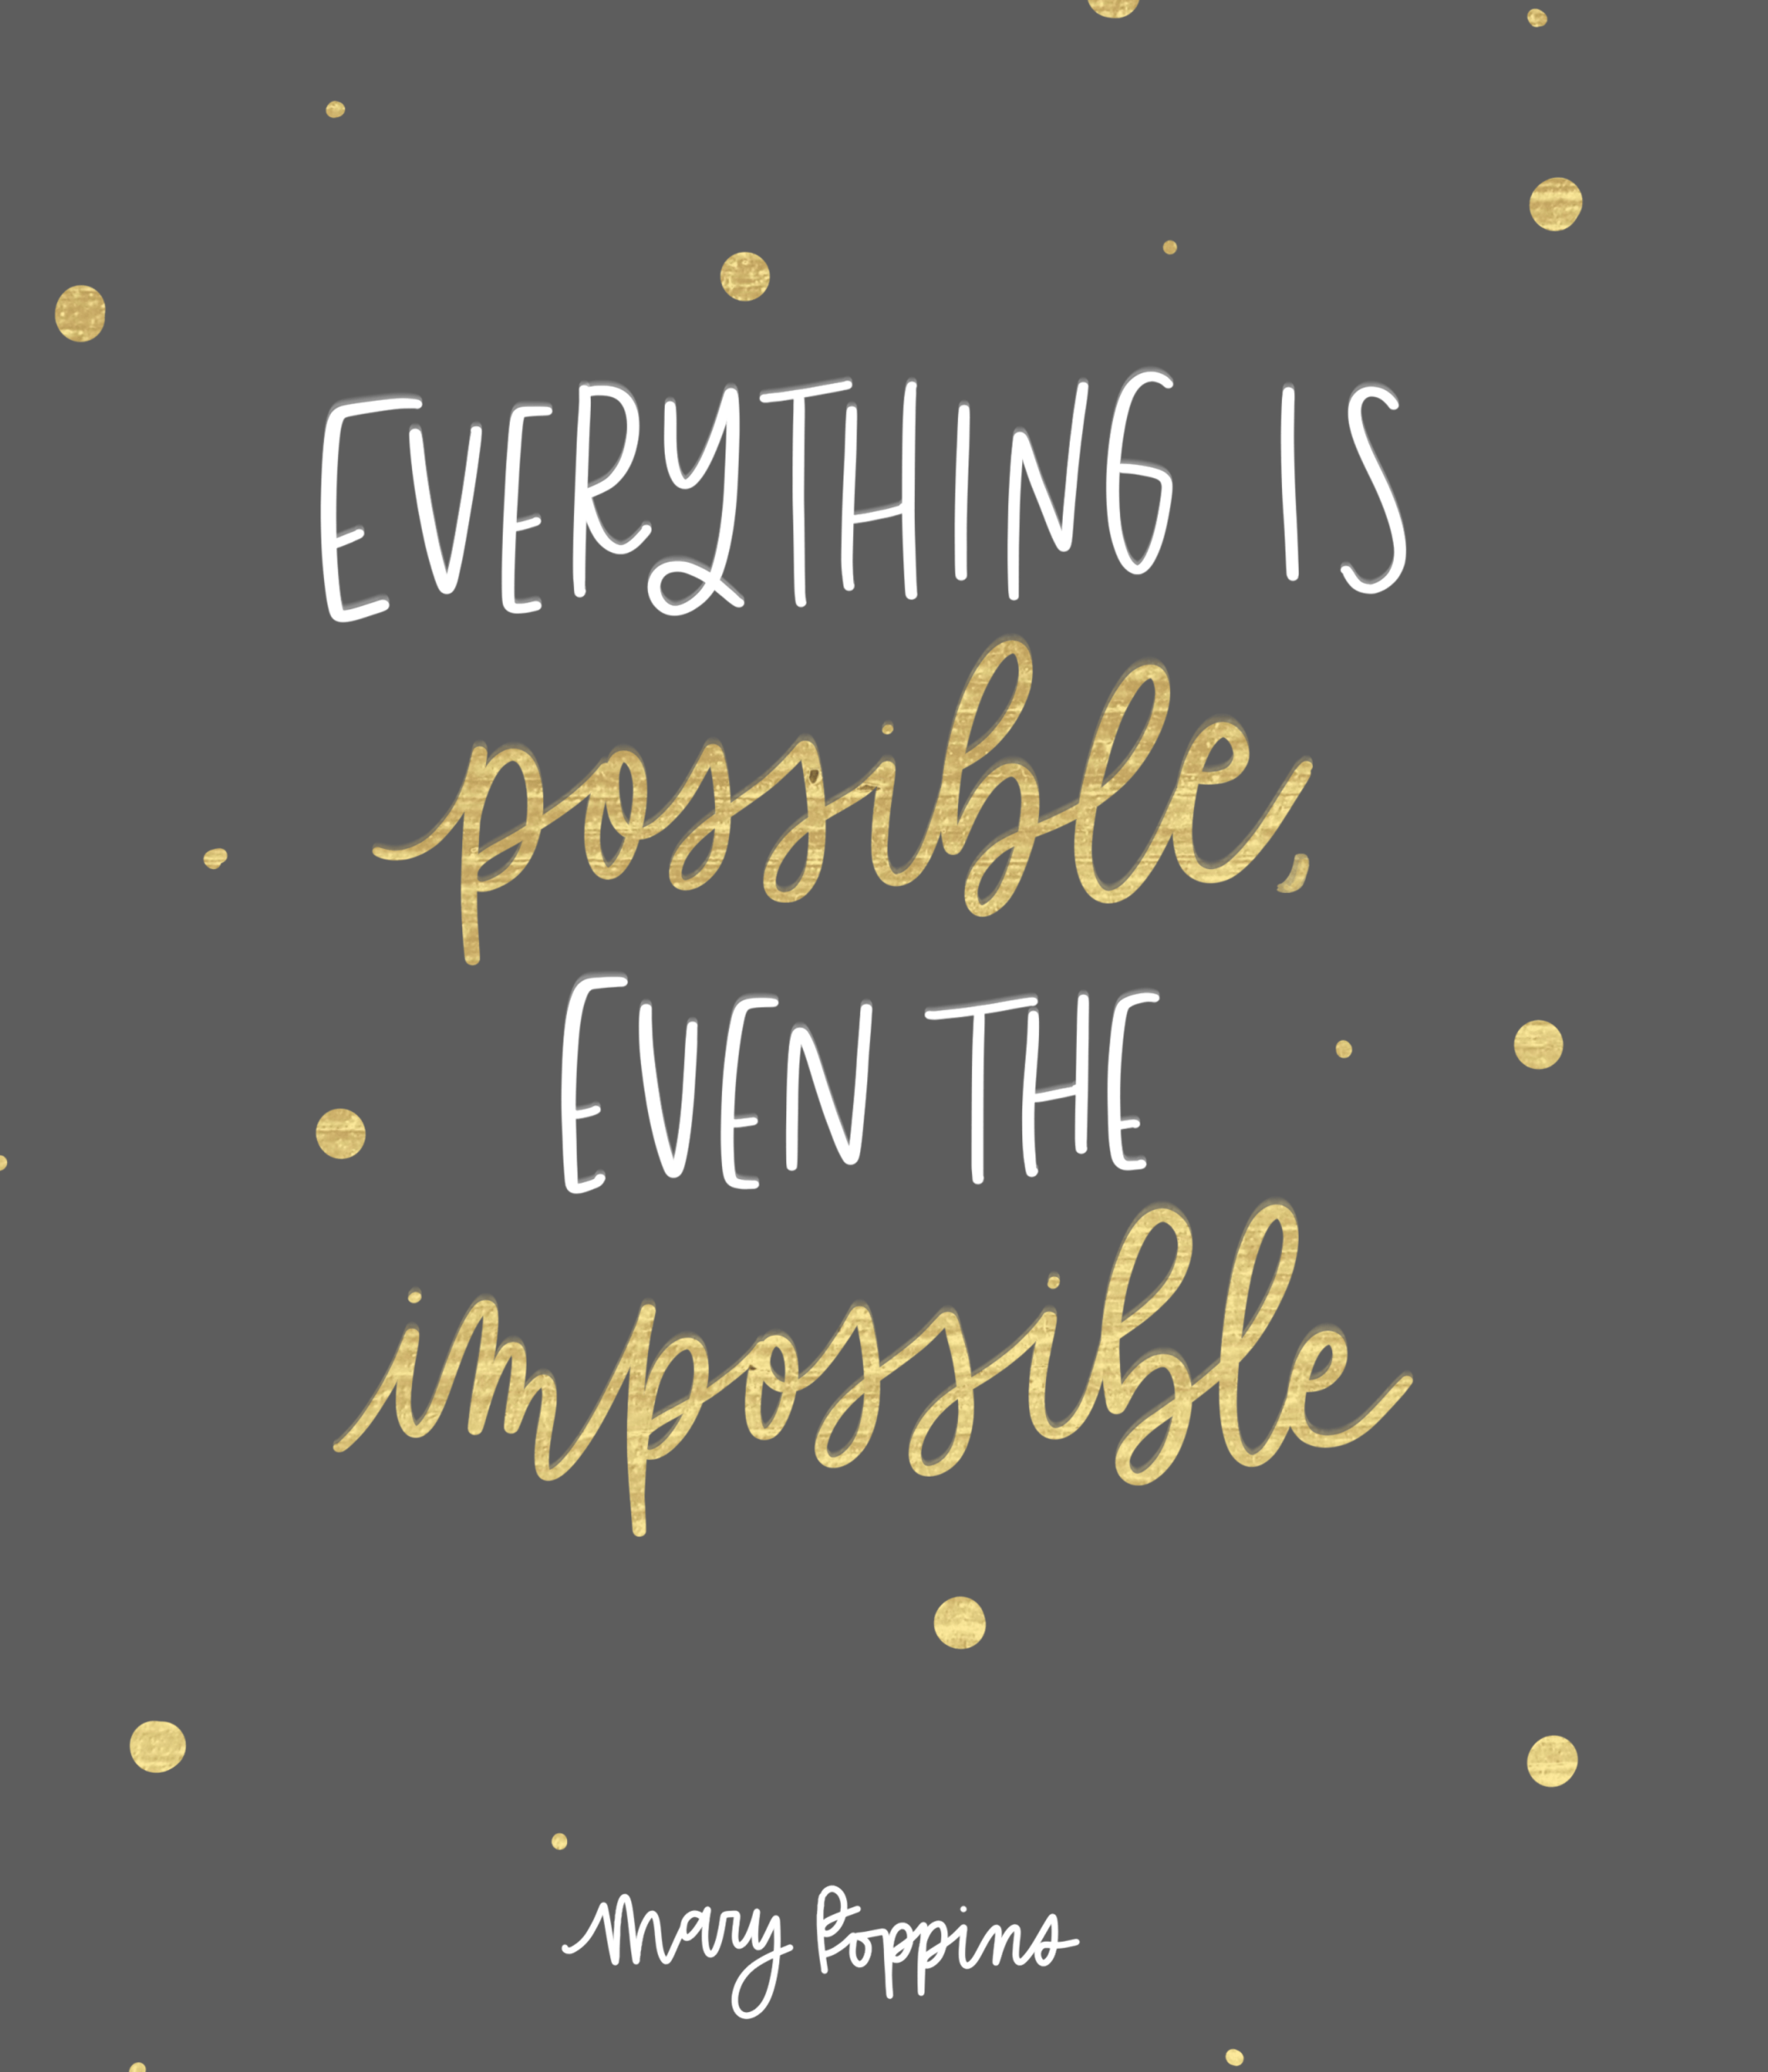 Everything Is Possible Even The Impossible Mary Poppins Returns Quotes From Mary Poppins Returns Mary Poppins 2018 Quotes Disney Quotes Quotes Marypoppin